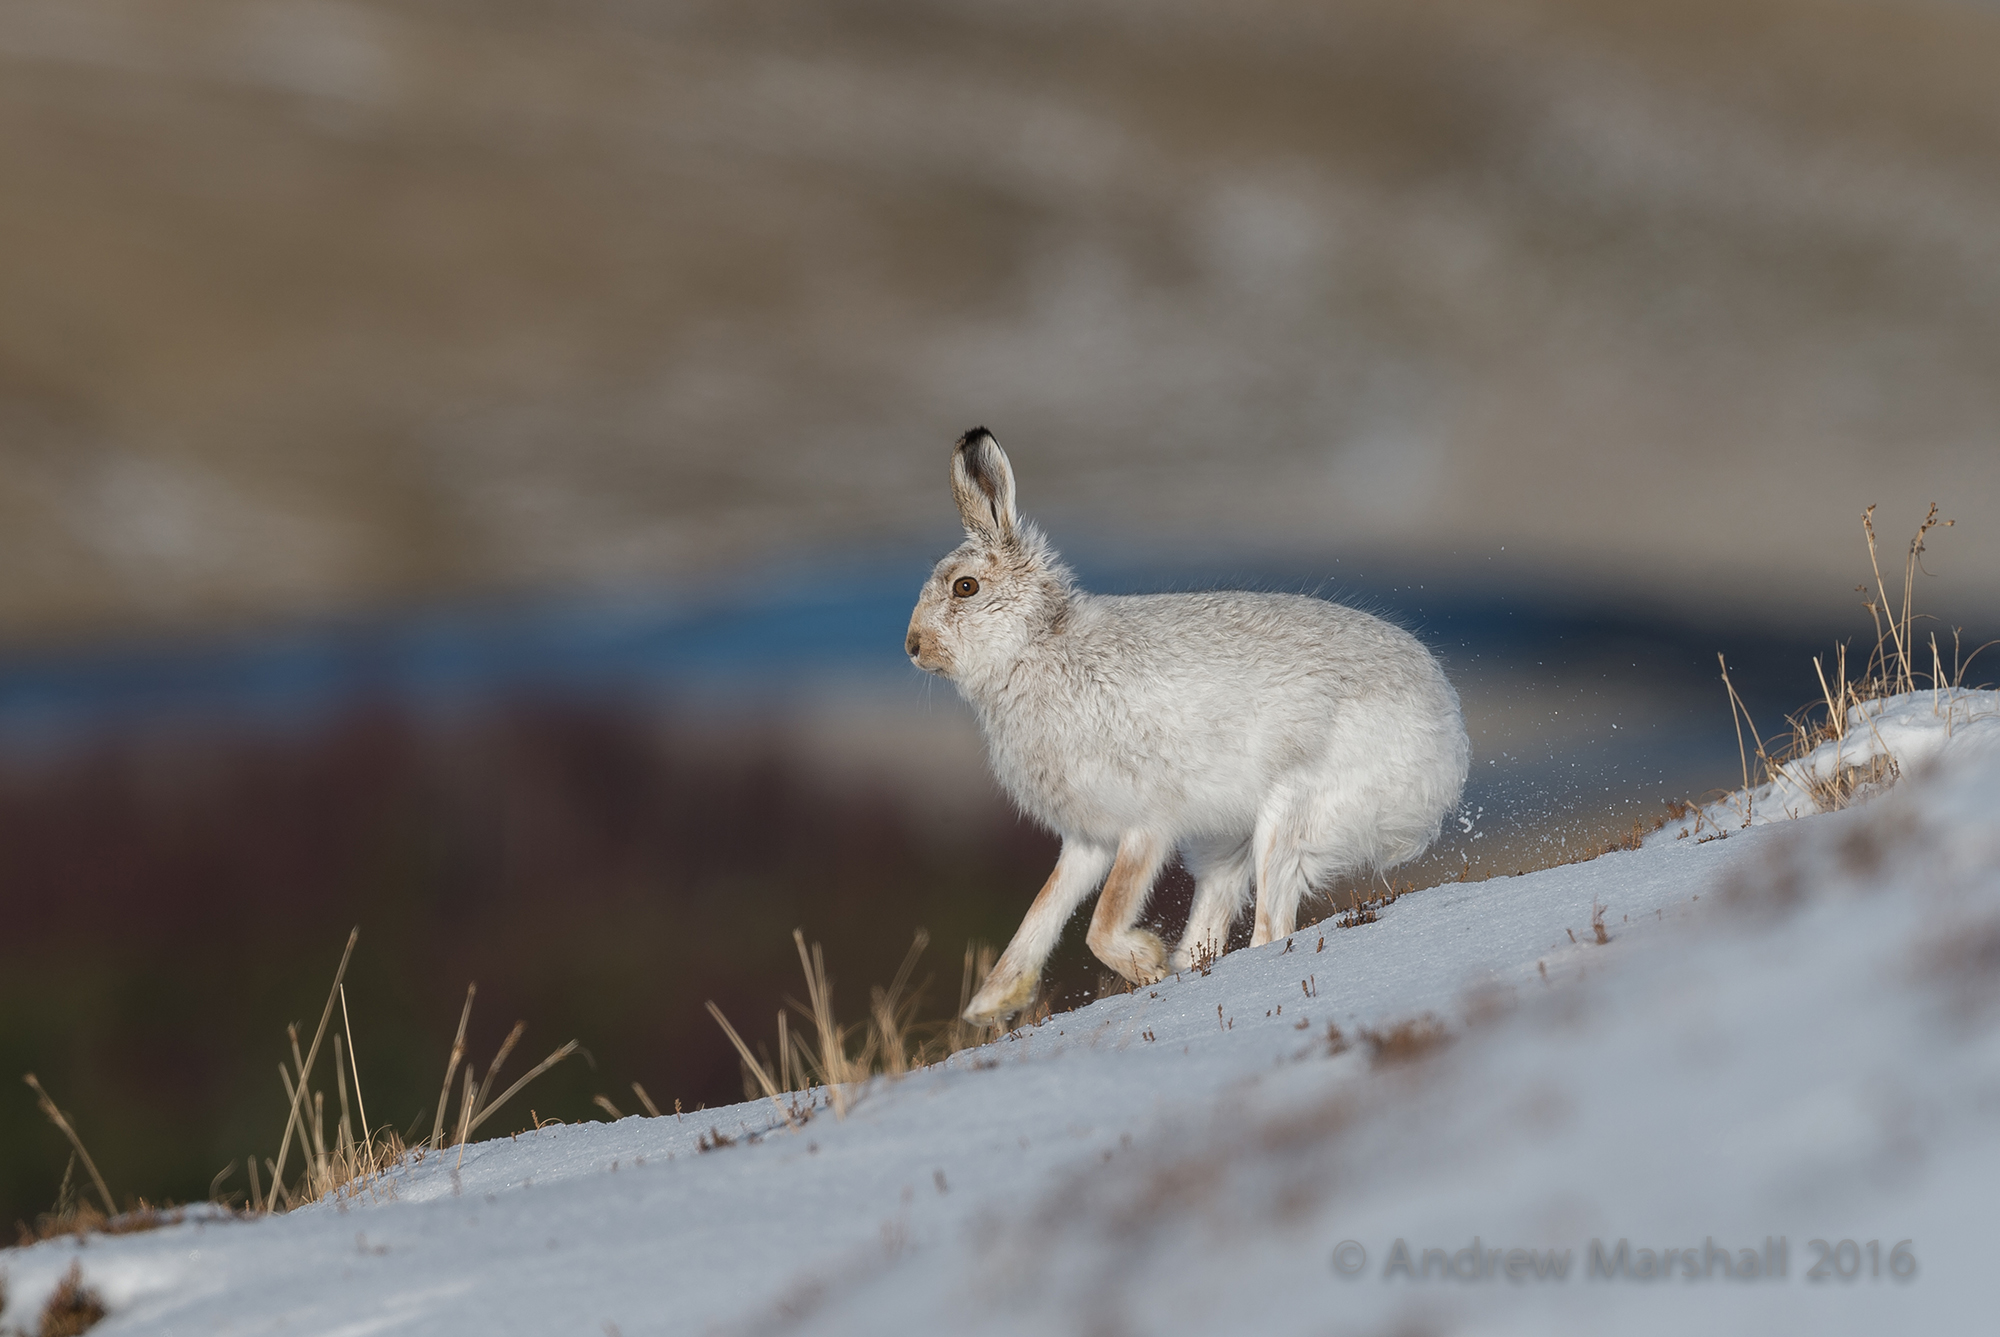 Mountain Hare, Cairngorms. Nikon D4, Nikkor 500mm f/4 and a 1.4 convertor at 700mm, ISO 180, 1/1000s at f/8 Handheld. March. © Andrew Marshall.